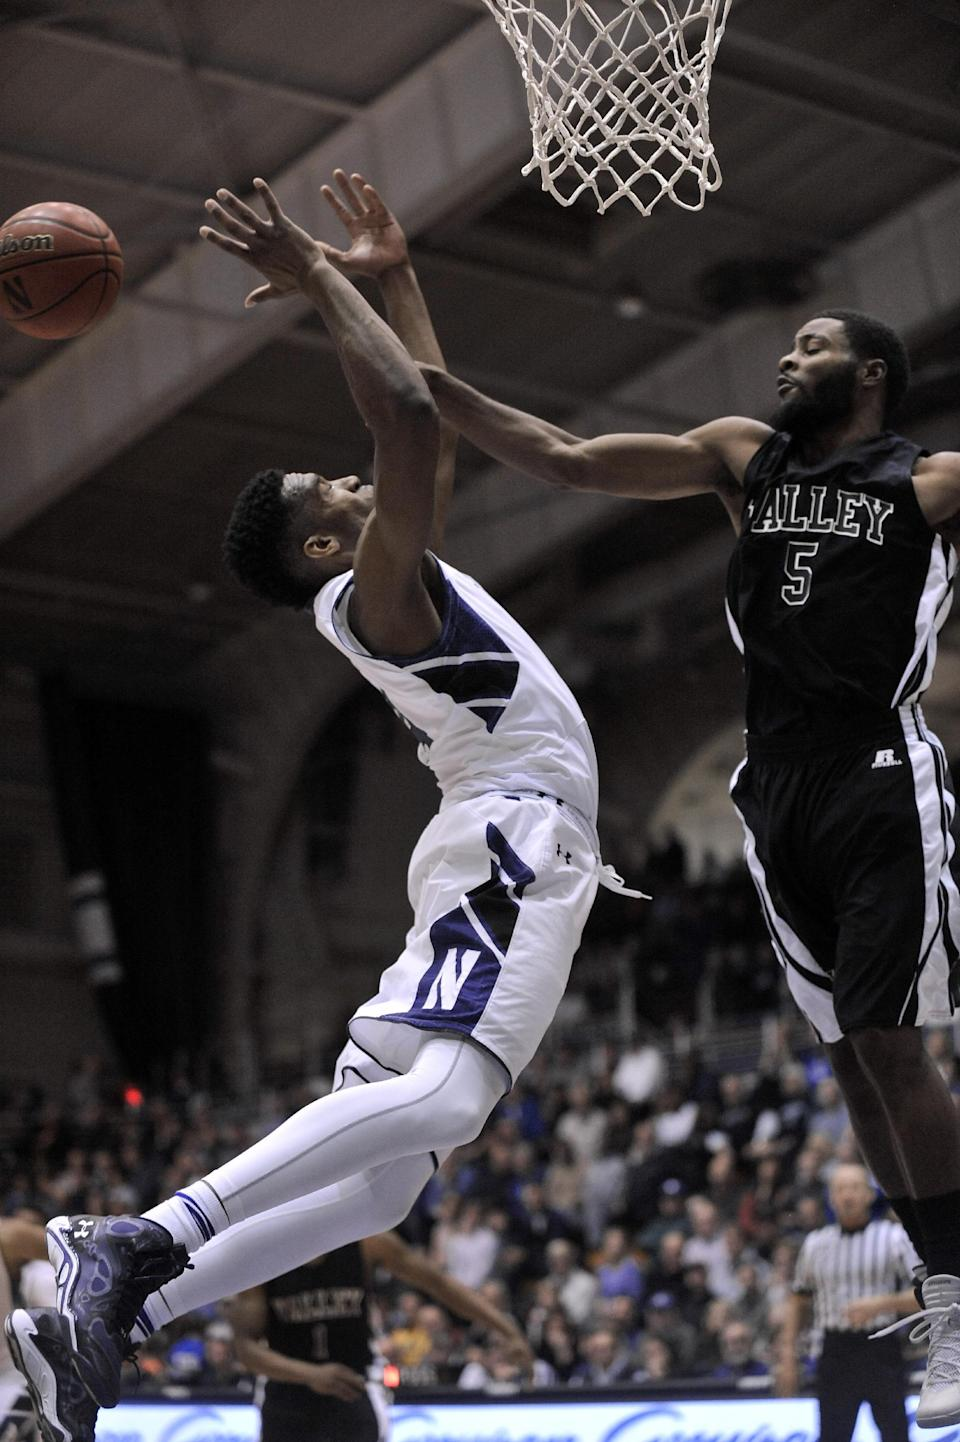 Northwestern's Vic Law (4) goes up for a rebound against Mississippi Valley State's Jeffery Simmons (5) during the first half of an NCAA college basketball game in Evanston, Ill., Sunday, Dec. 14, 2014. (AP Photo/Paul Beaty)